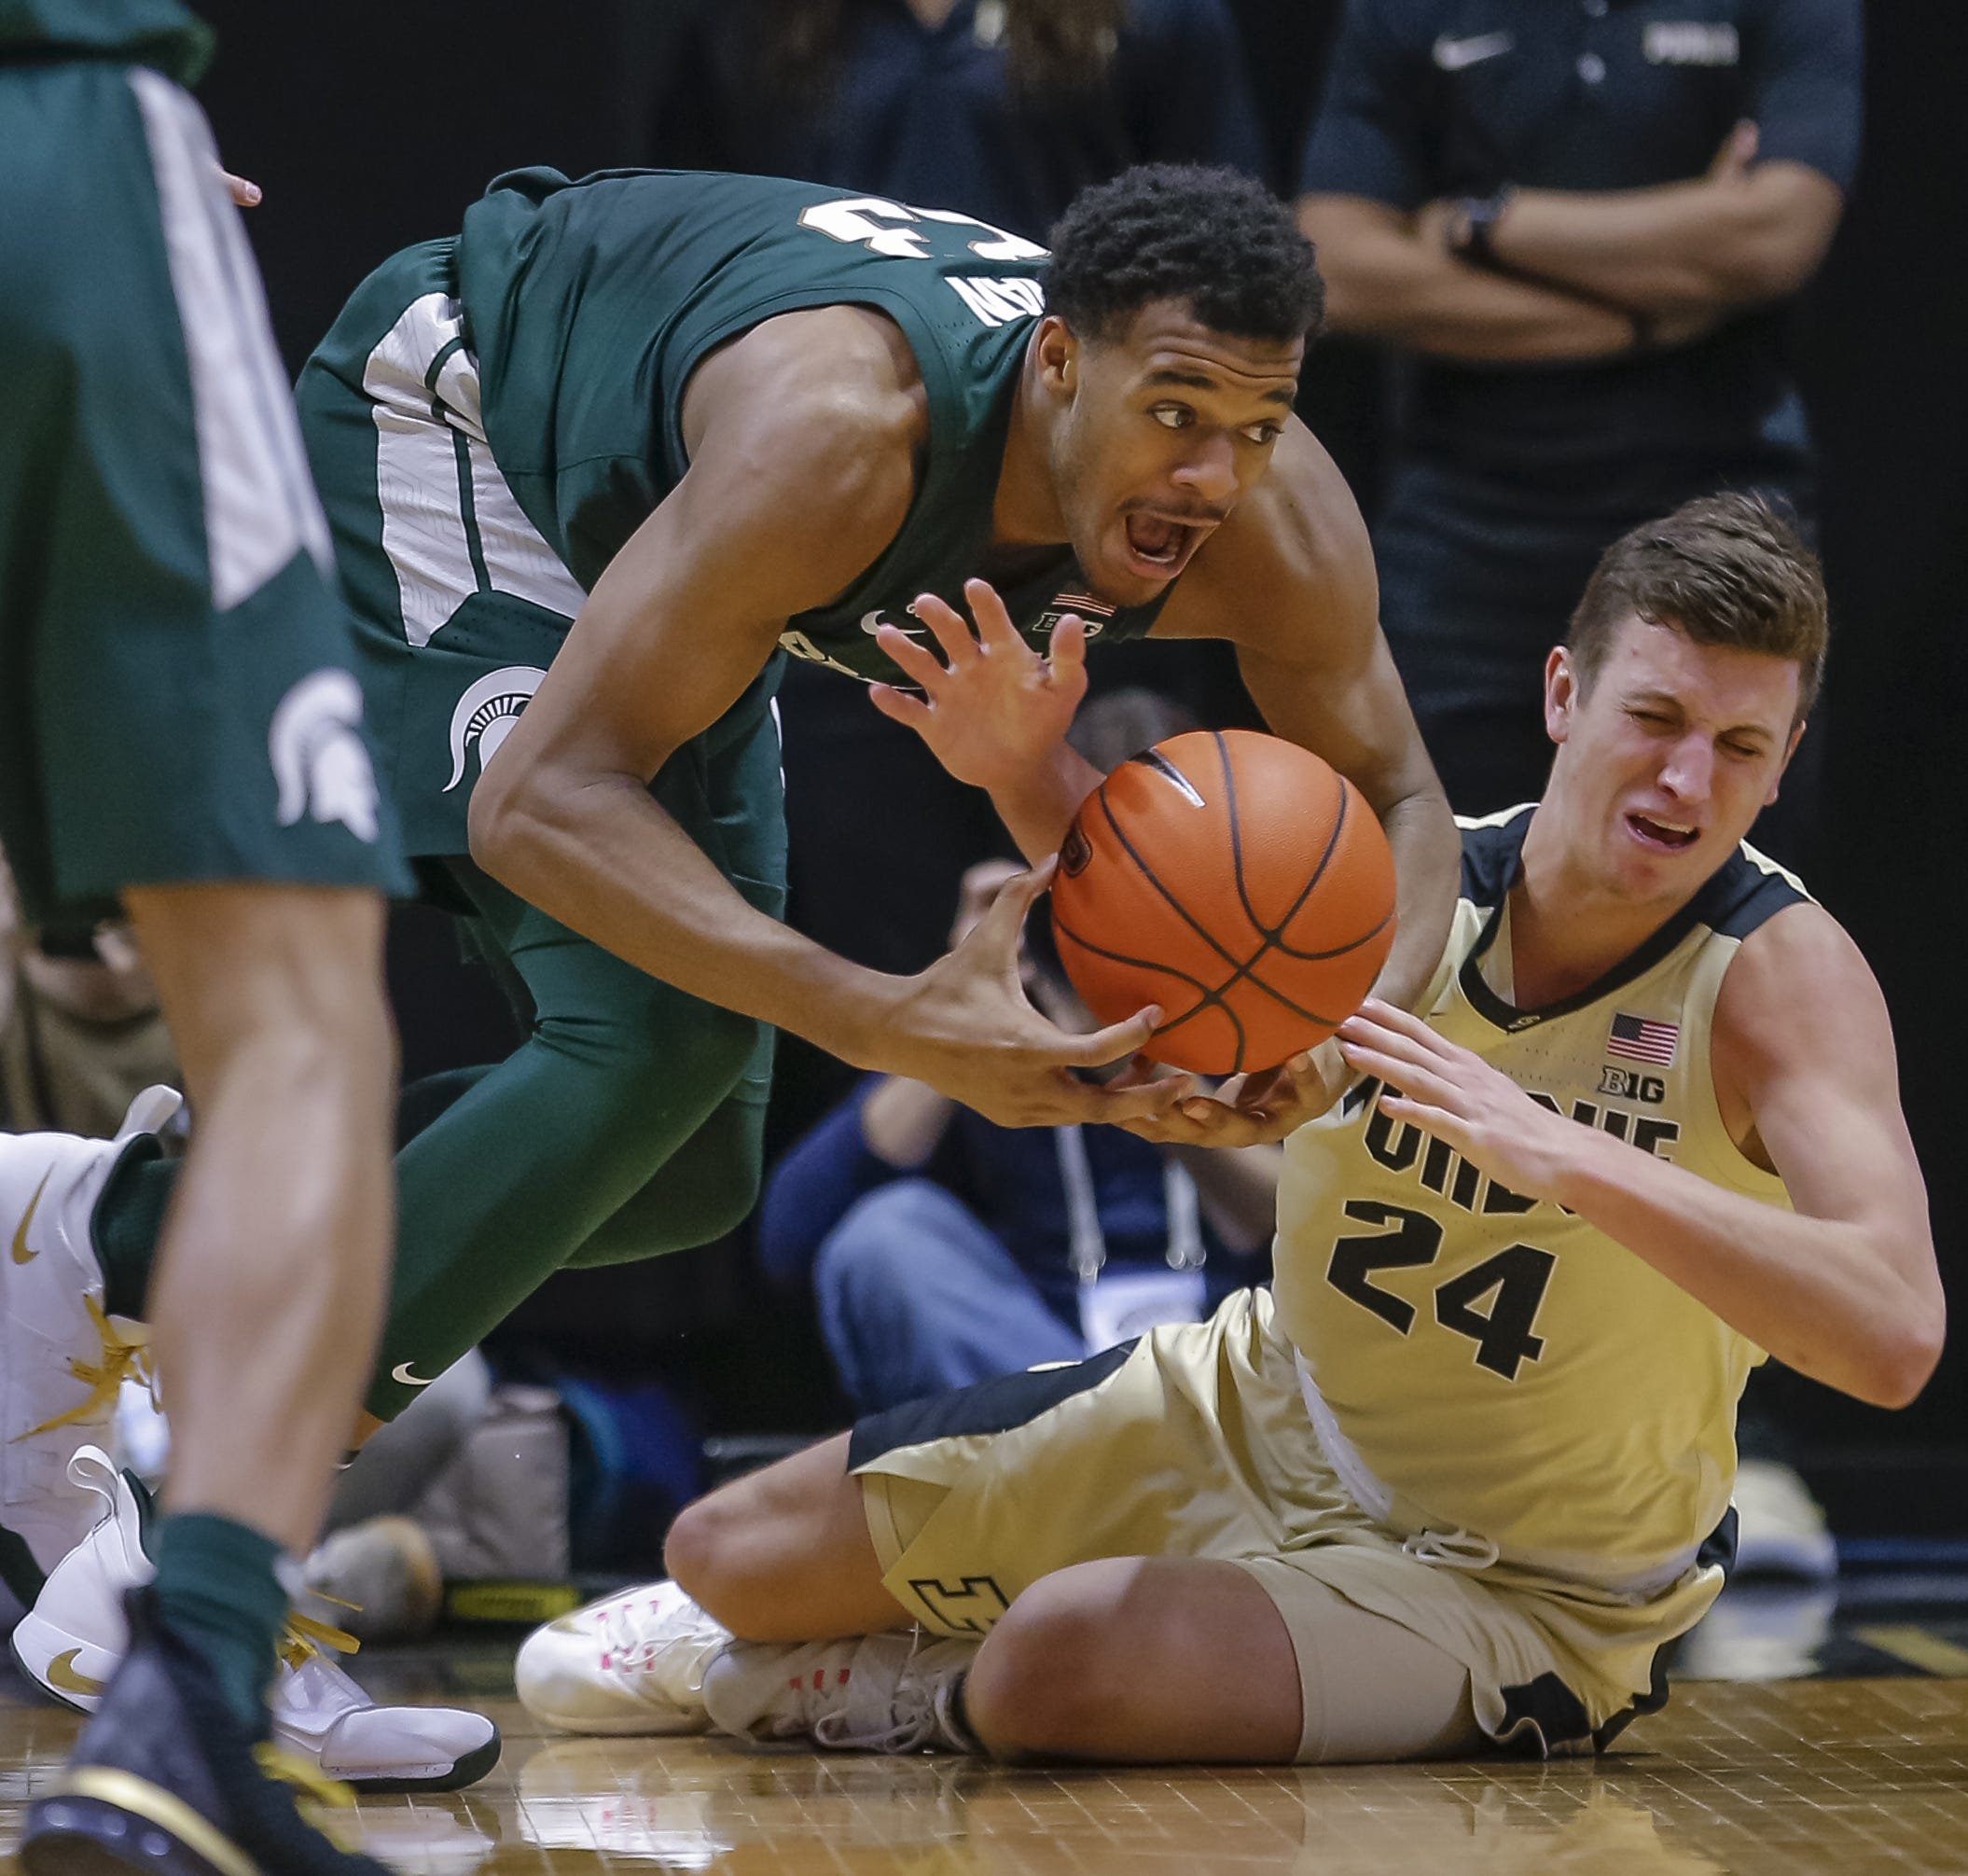 Michigan State forward Xavier Tillman and Purdue forward Grady Eifert battle for the loose ball during MSU's 73-63 loss on Sunday, Jan. 27, 2019, in West Lafayette, Indiana.